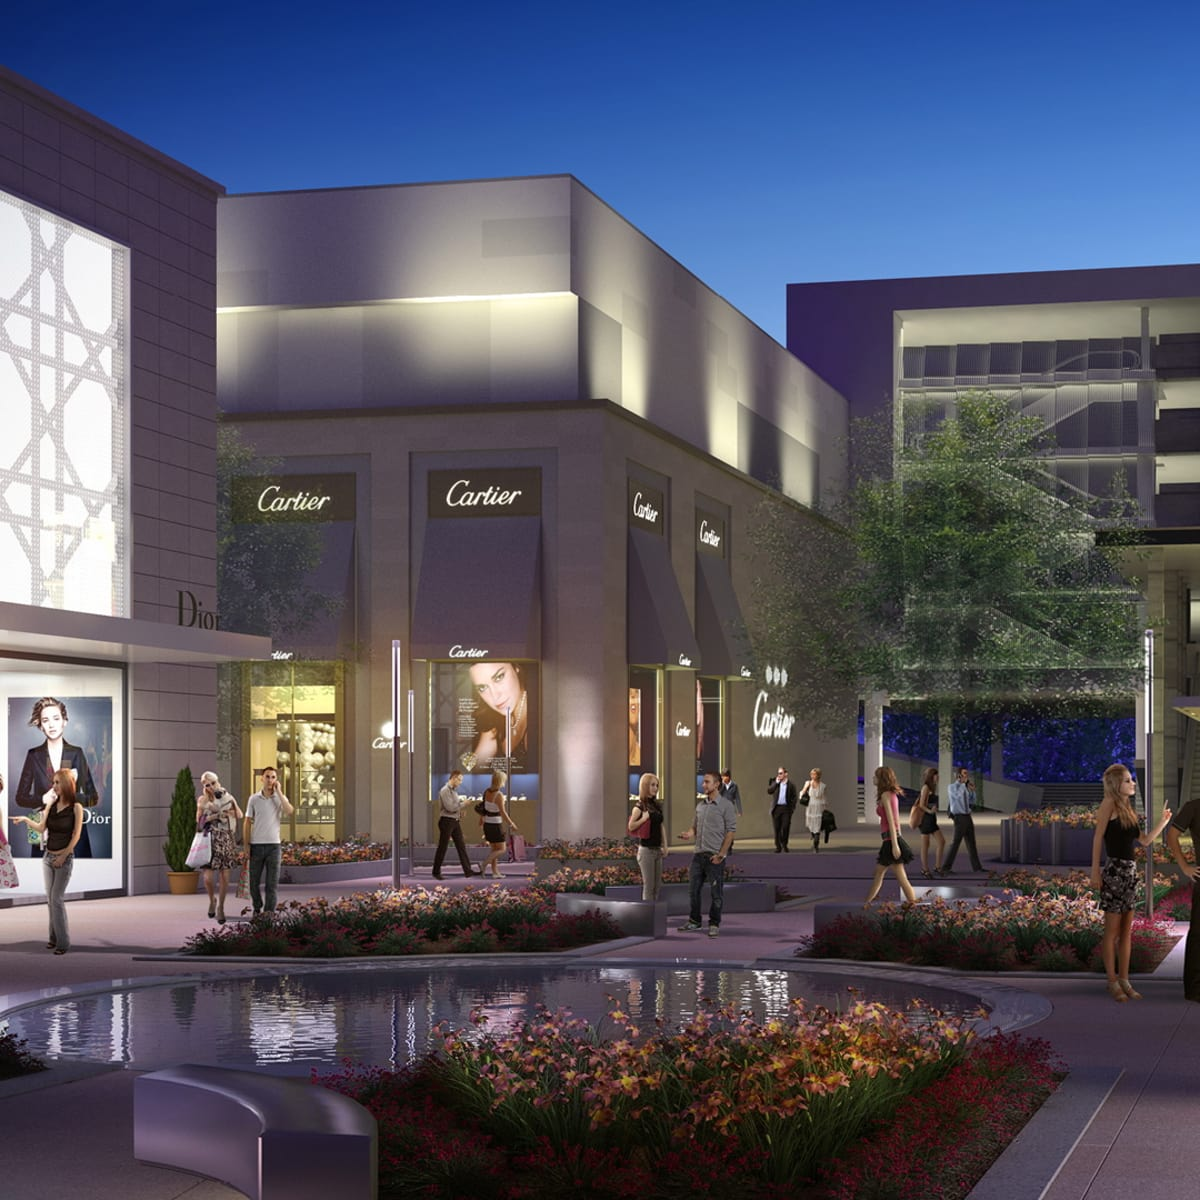 Dior and Cartier rendering at River Oaks District